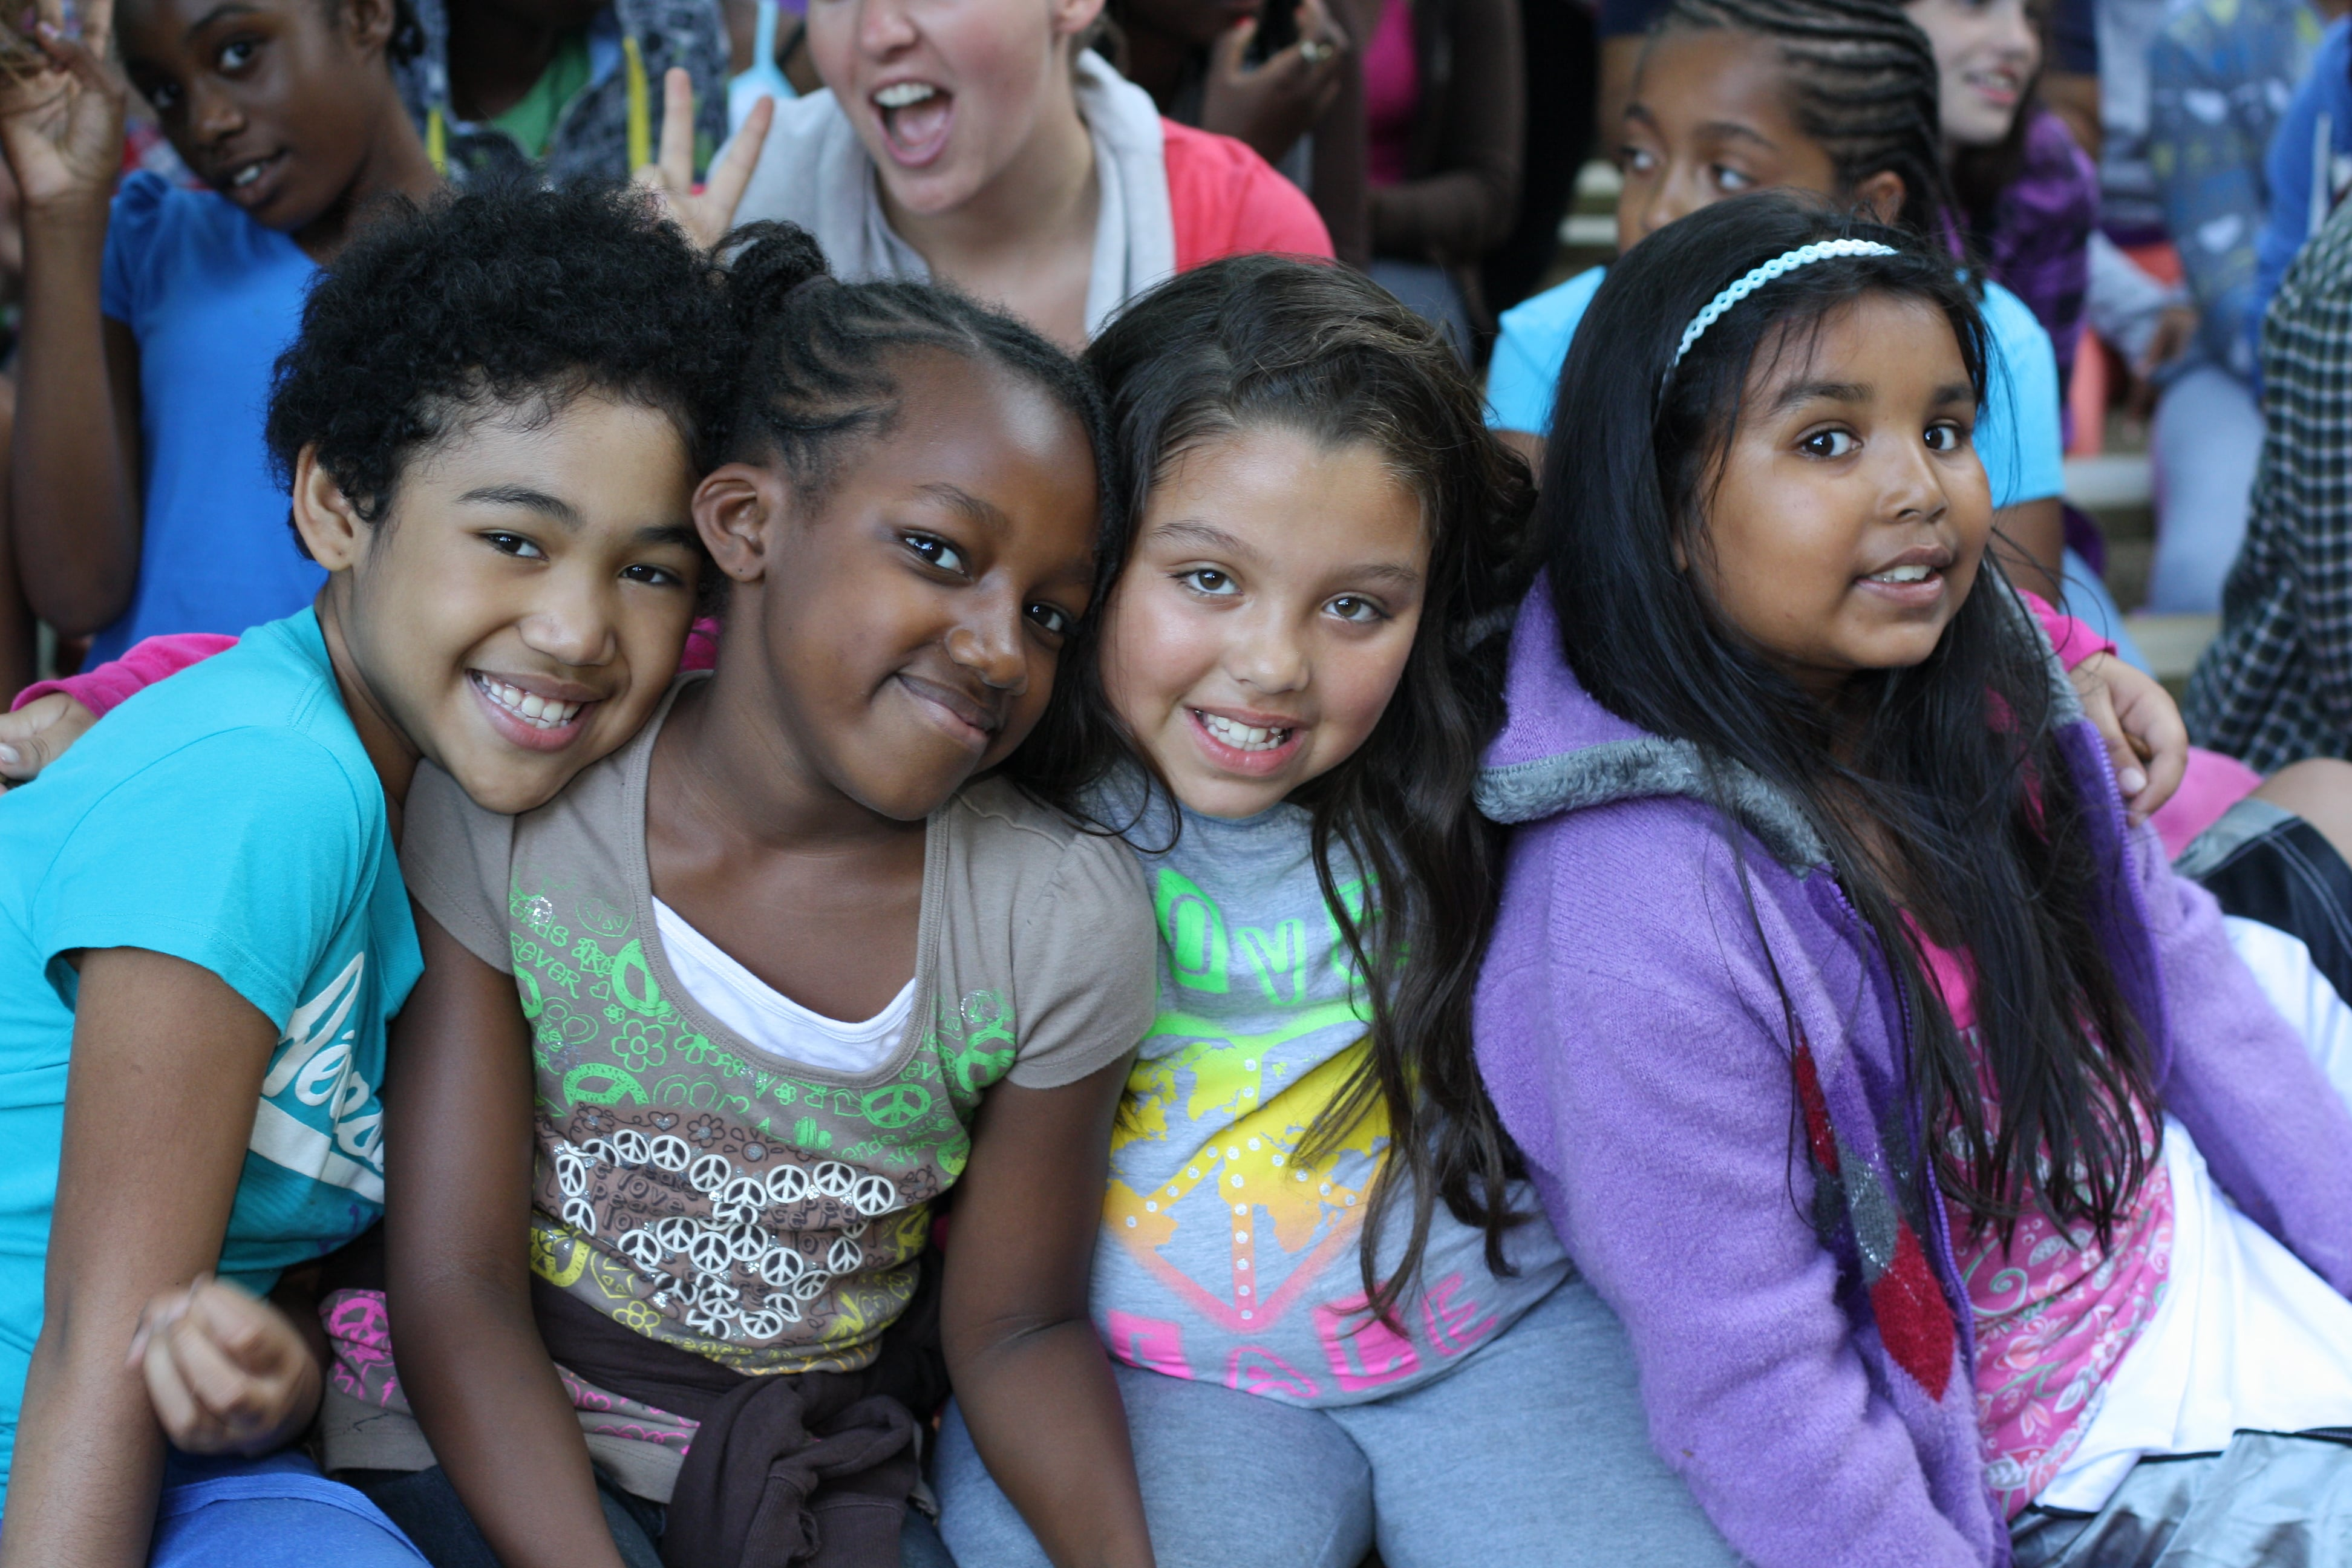 Summer Camp - great learning choice for kids